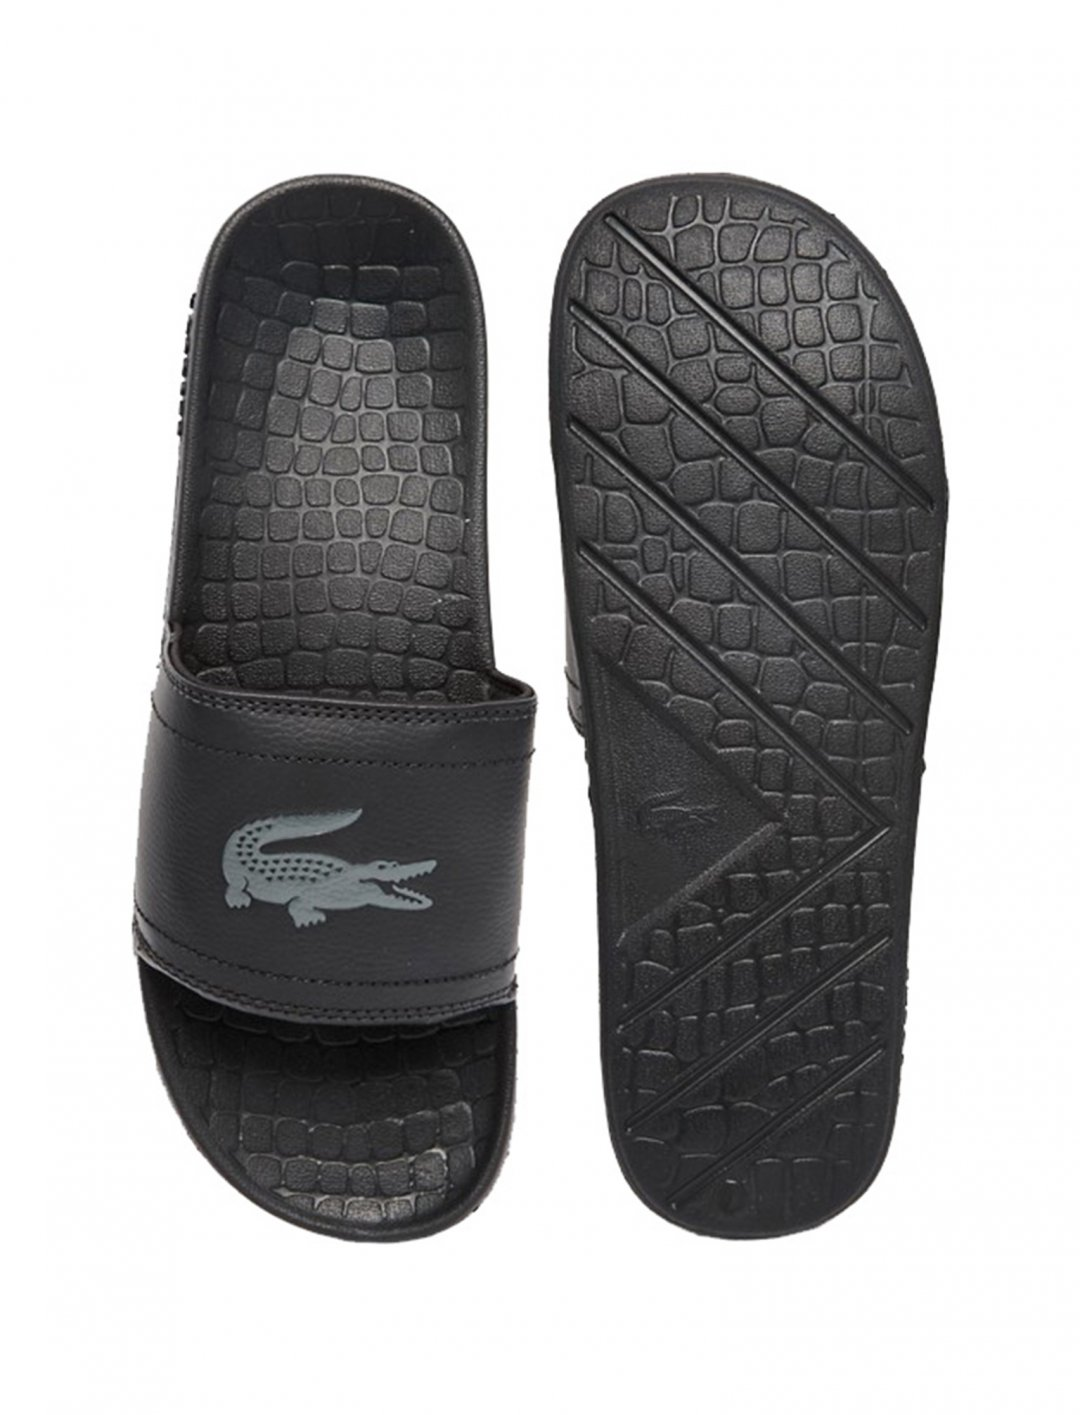 "Slider Flip Flops {""id"":12,""product_section_id"":1,""name"":""Shoes"",""order"":12} Lacoste"